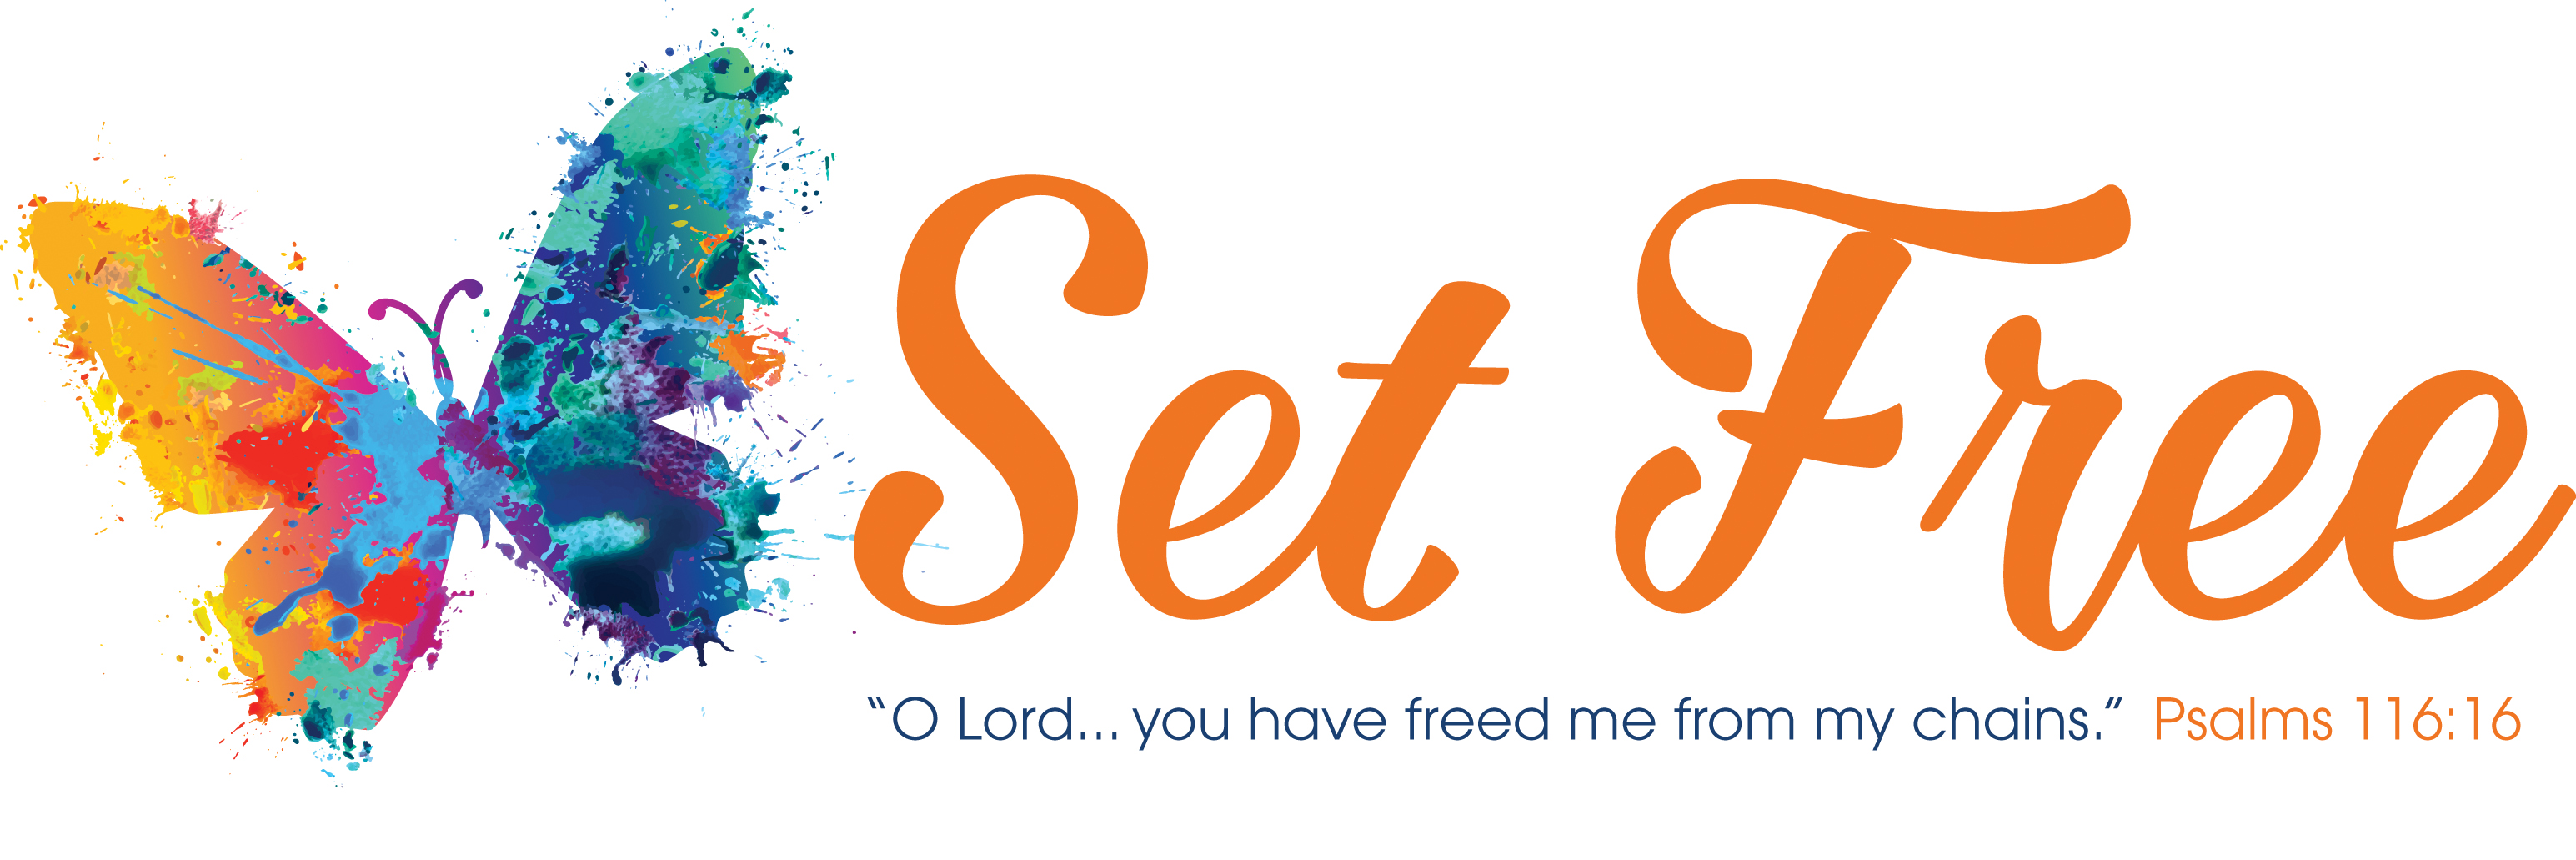 Set Free Capital Campaign Logo Design